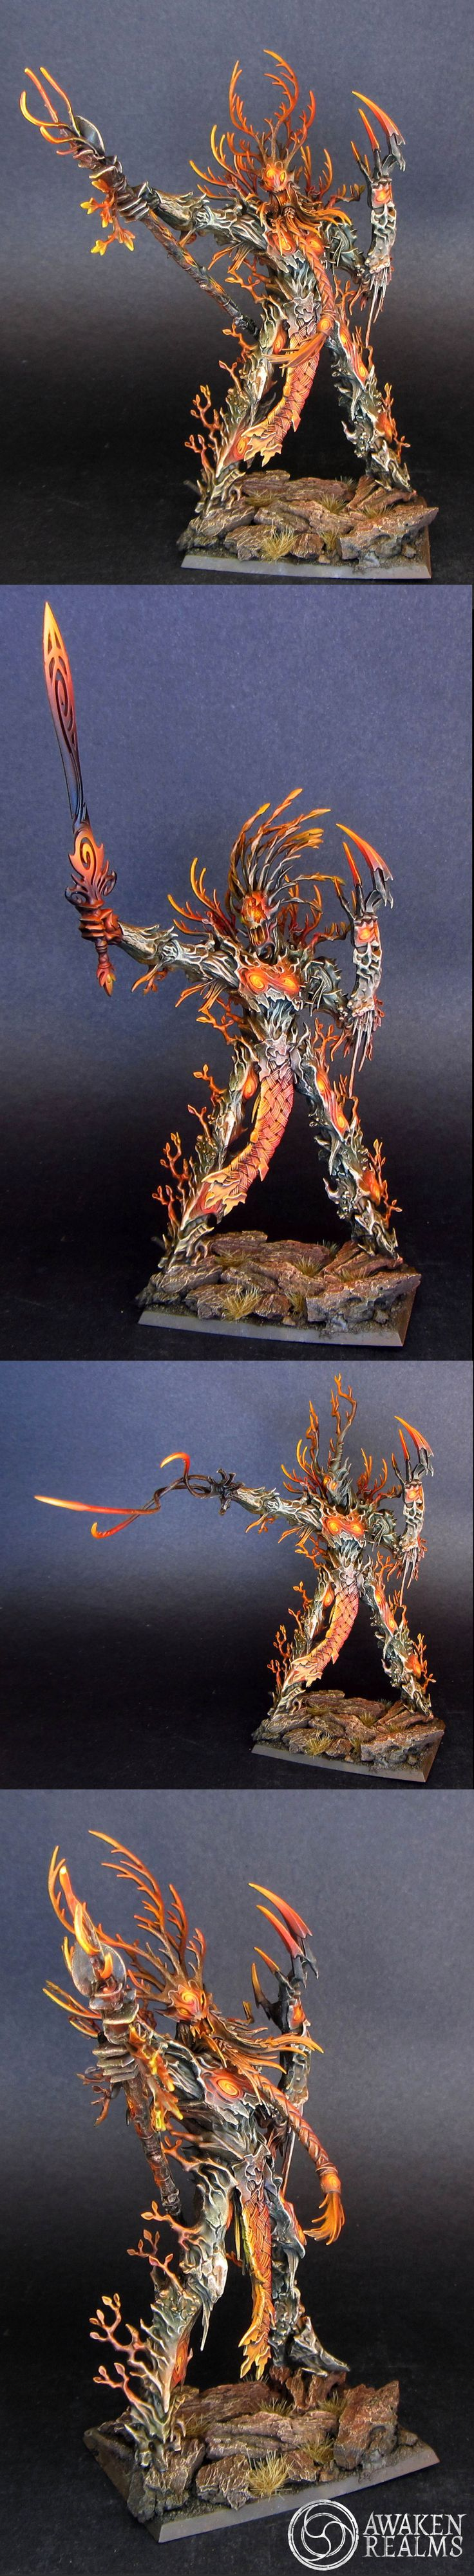 Wood Elves Elf Treeman Ancient / Durthu - It's about time the wood elf army got an update